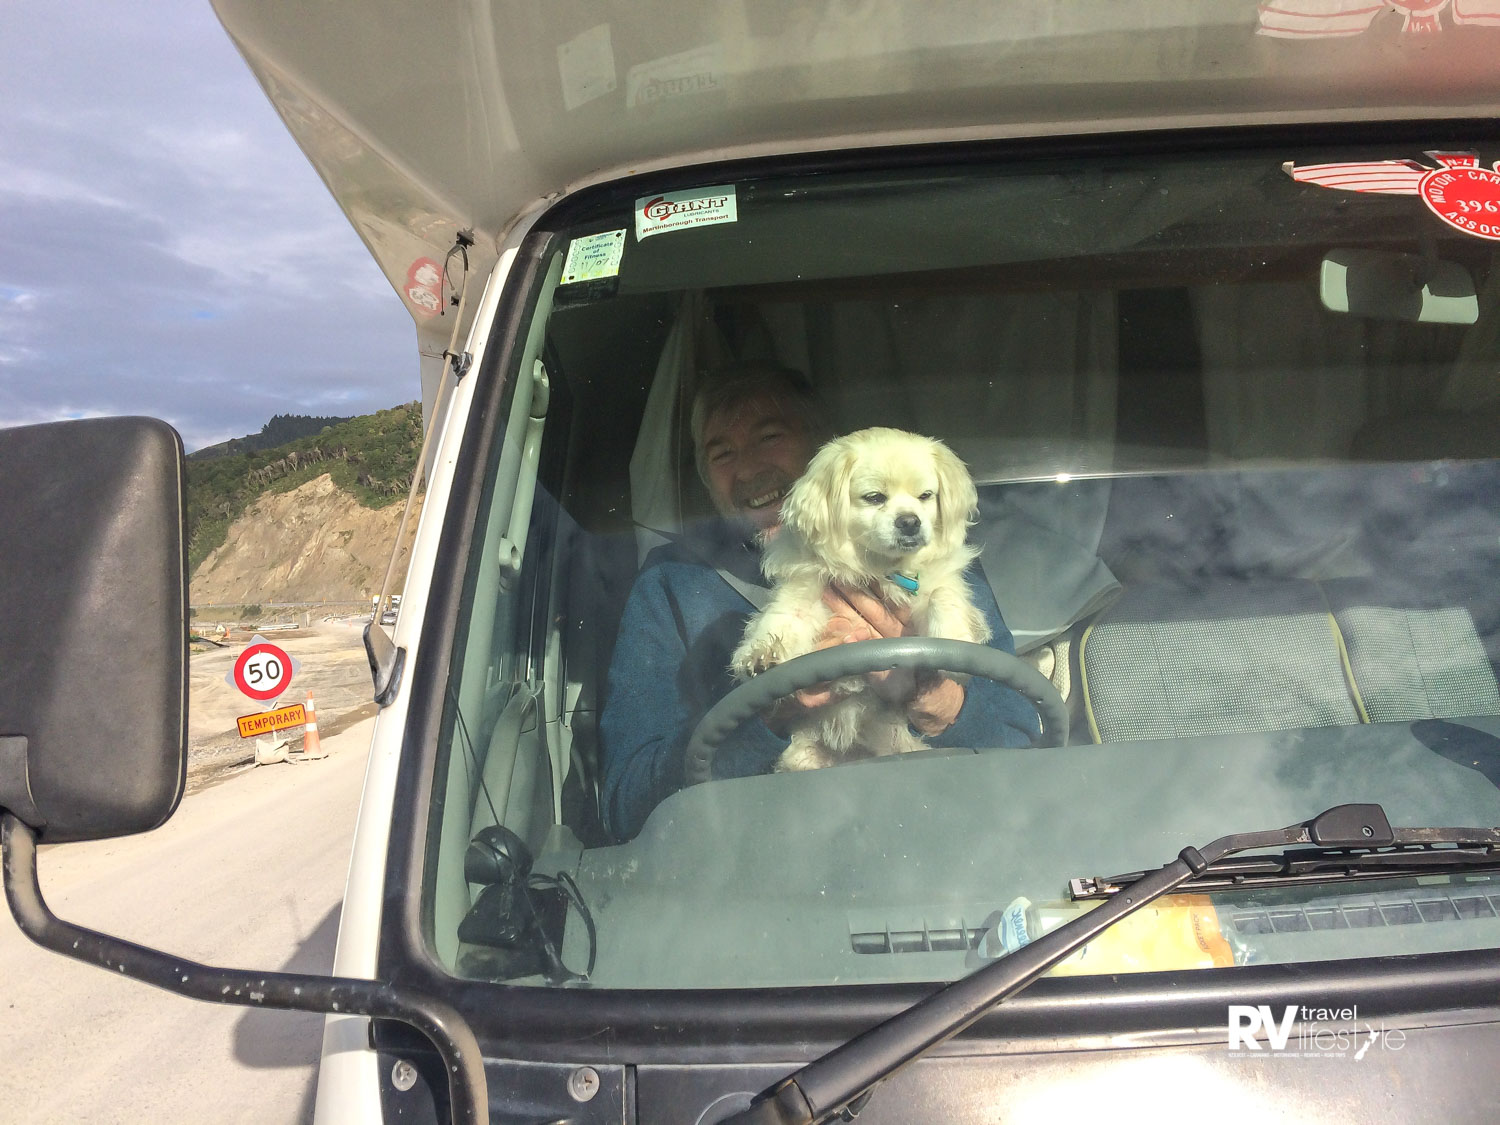 Da papa and I pretended I was driving, while we waited at road works on the road from Kaikoura to Blenheim